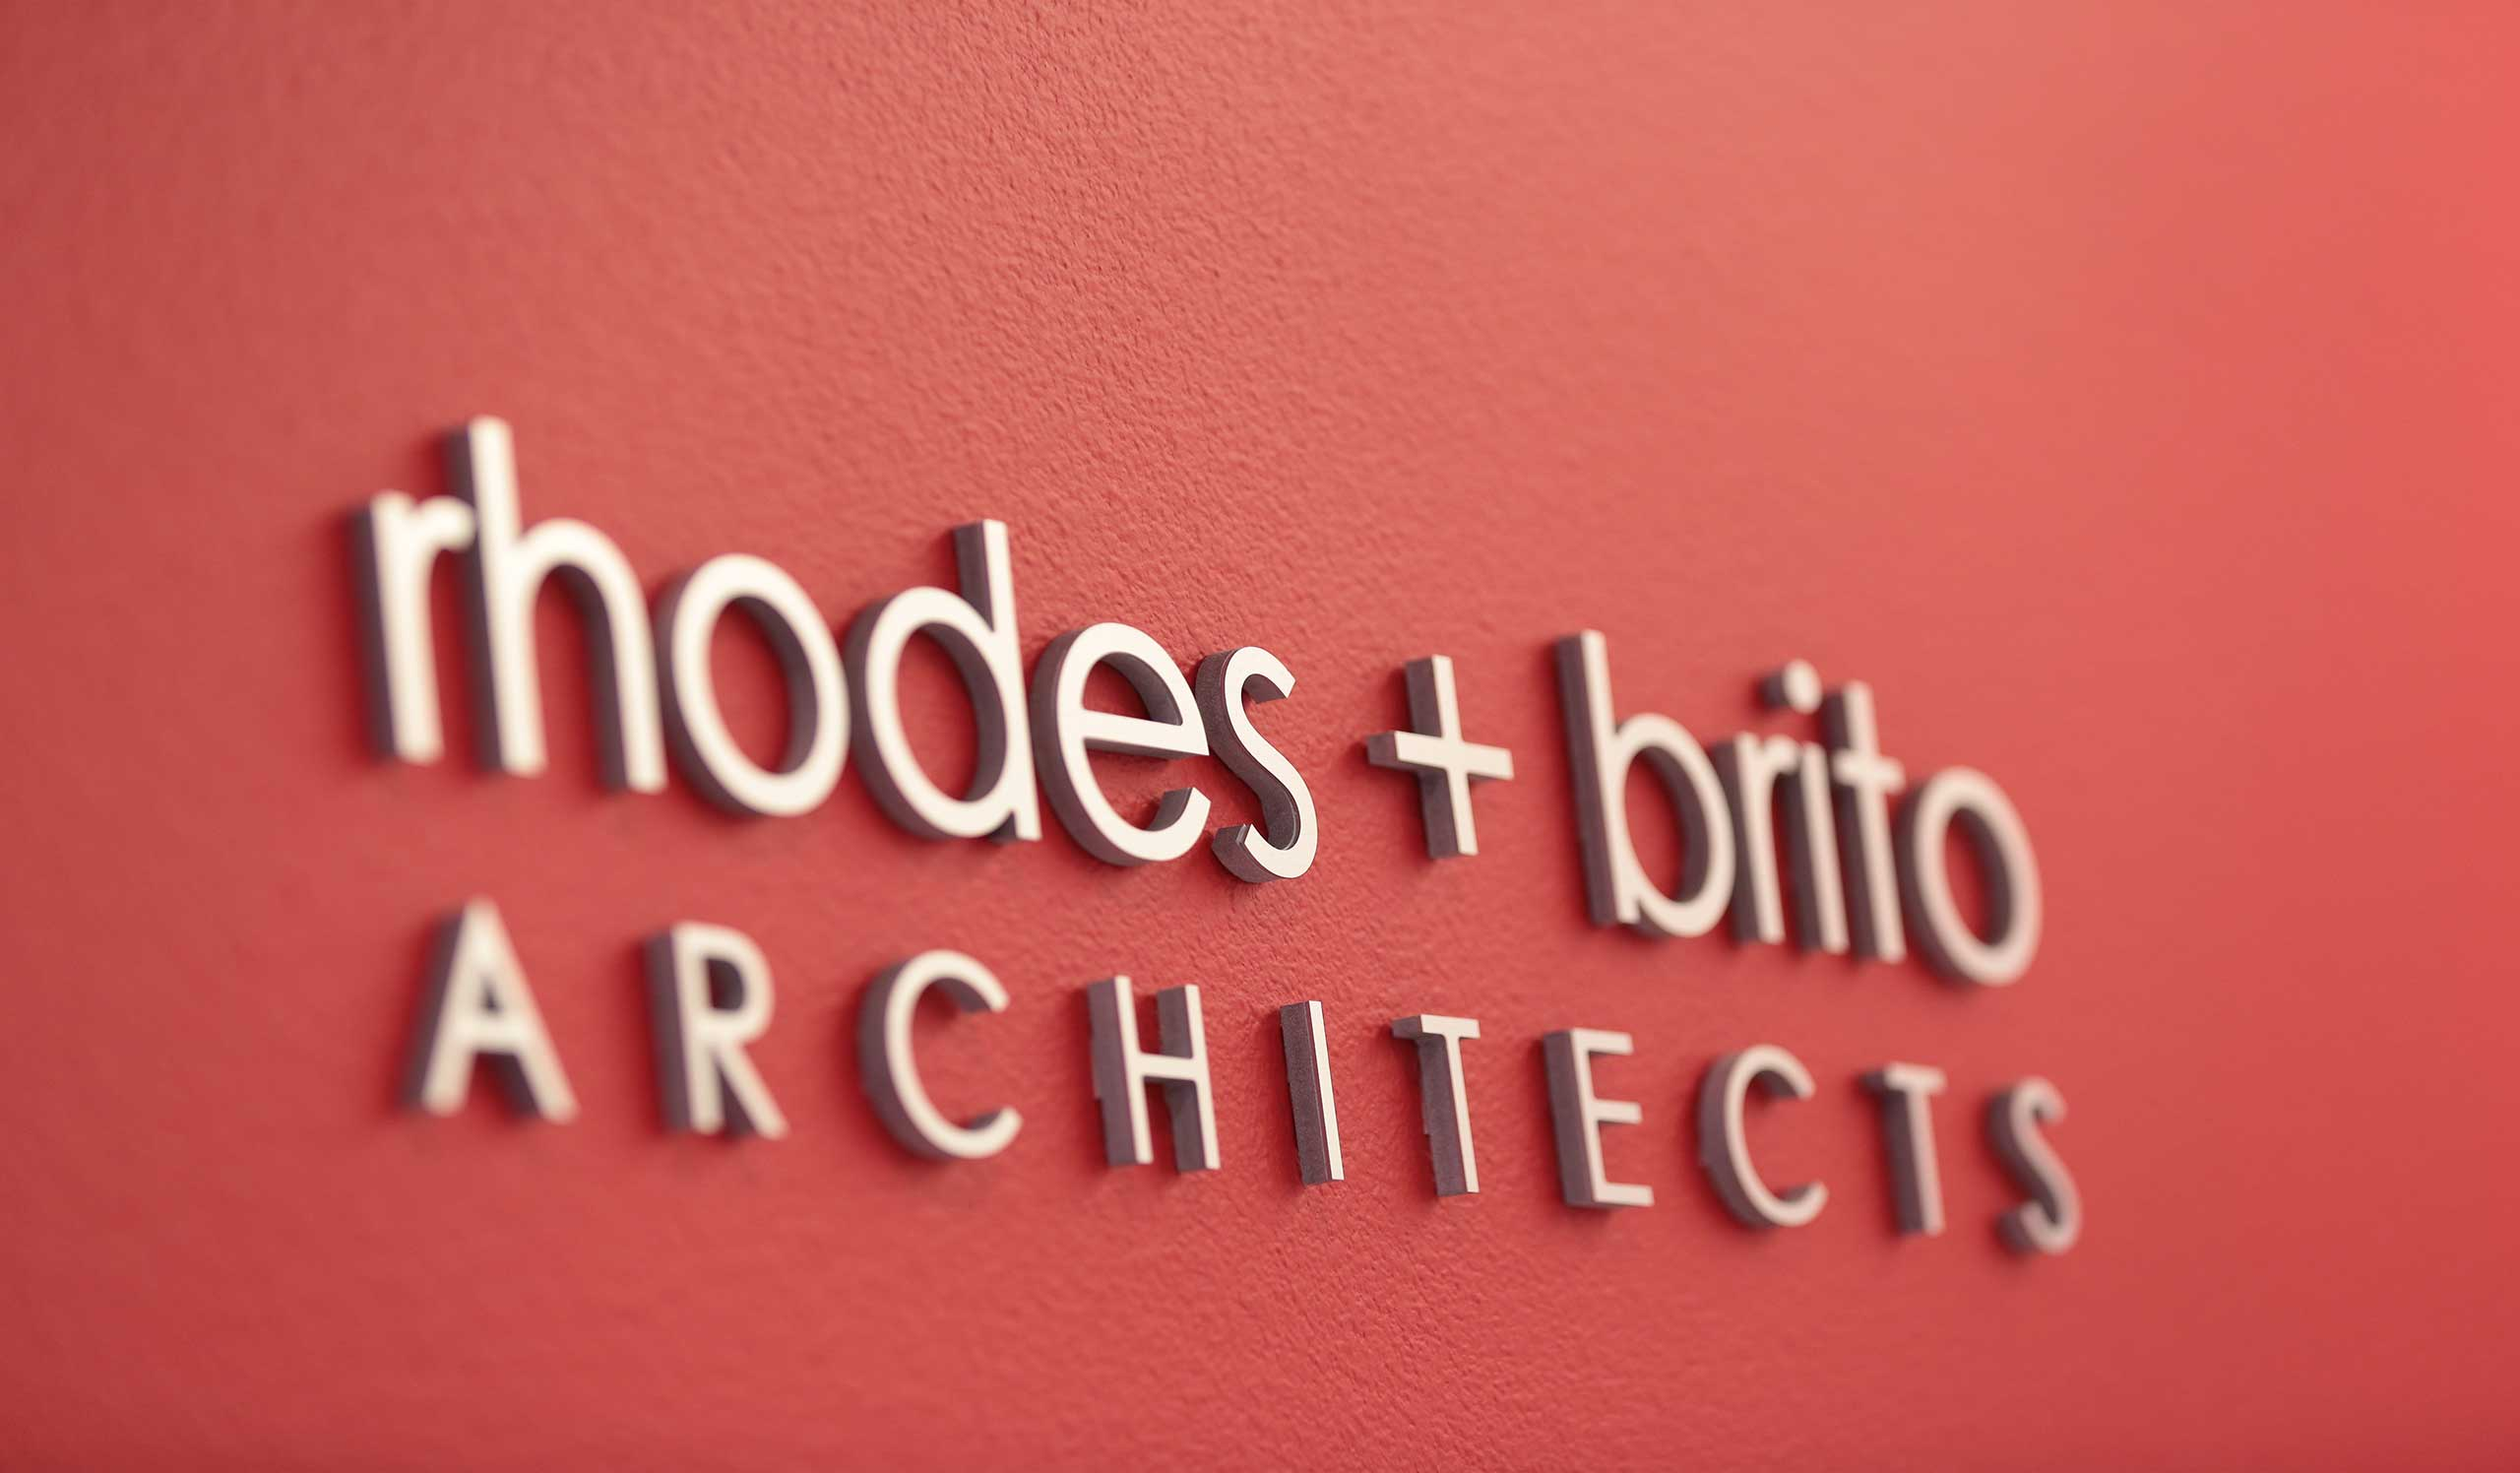 http://www.rbarchitects.com/wp-content/uploads/2015/09/RB-1_logo.jpg